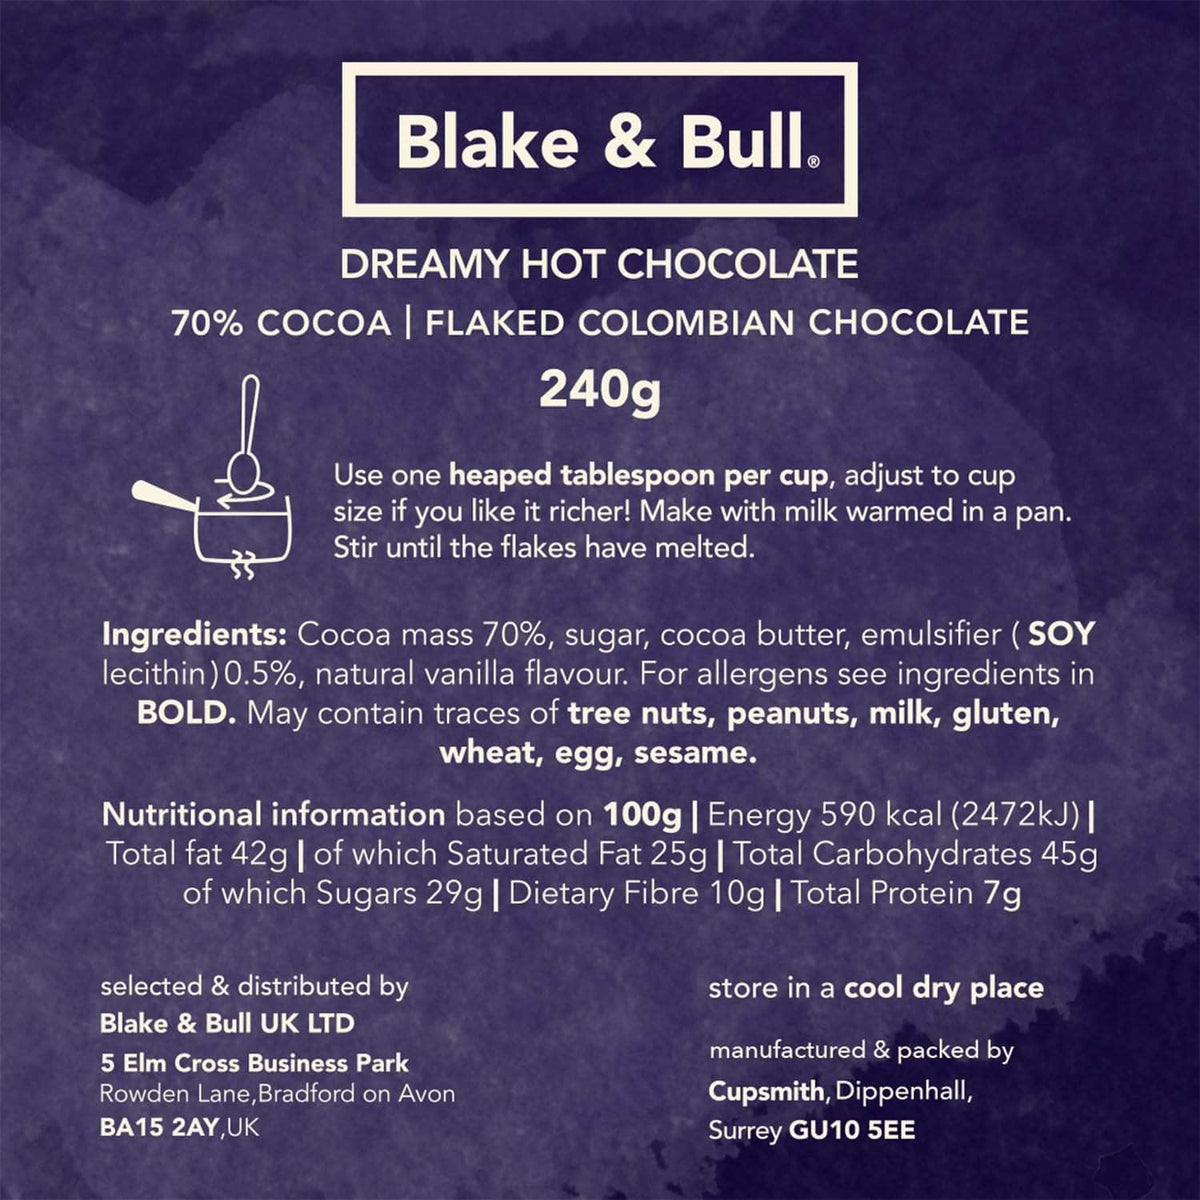 *New* Dreamy hot chocolate